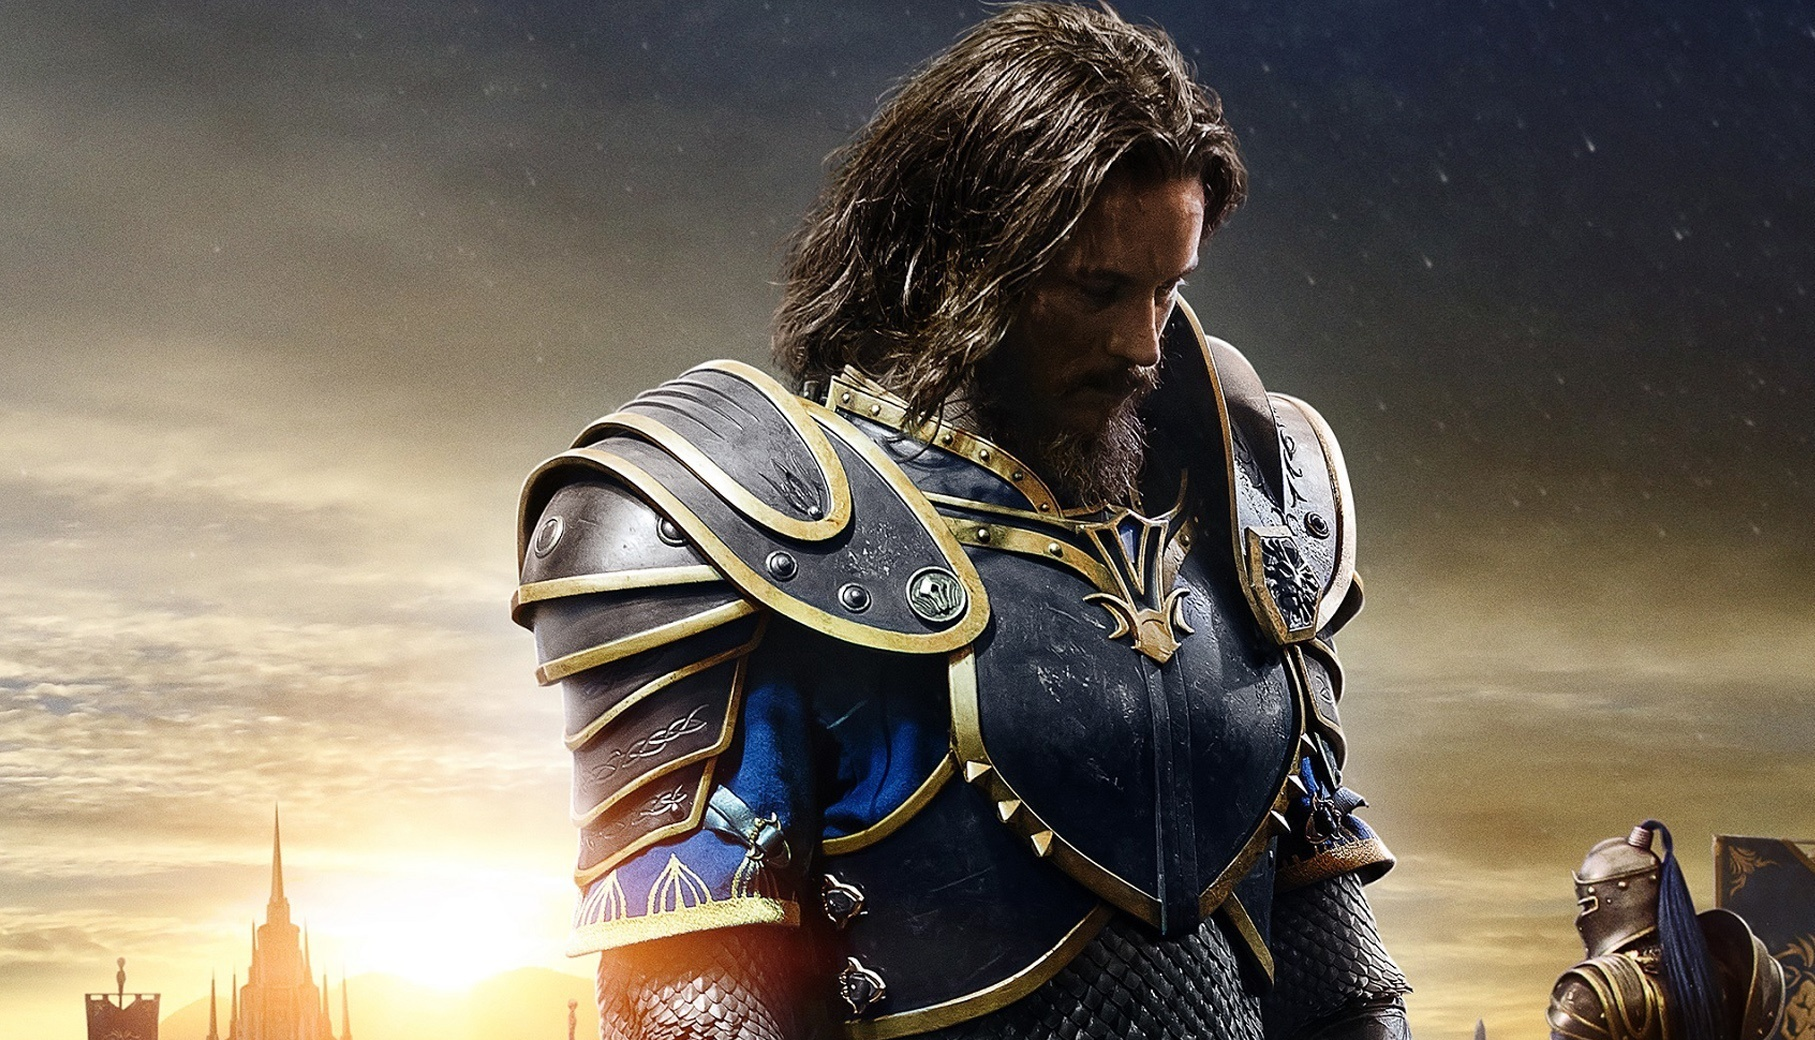 Warcraft Movie Wallpapers